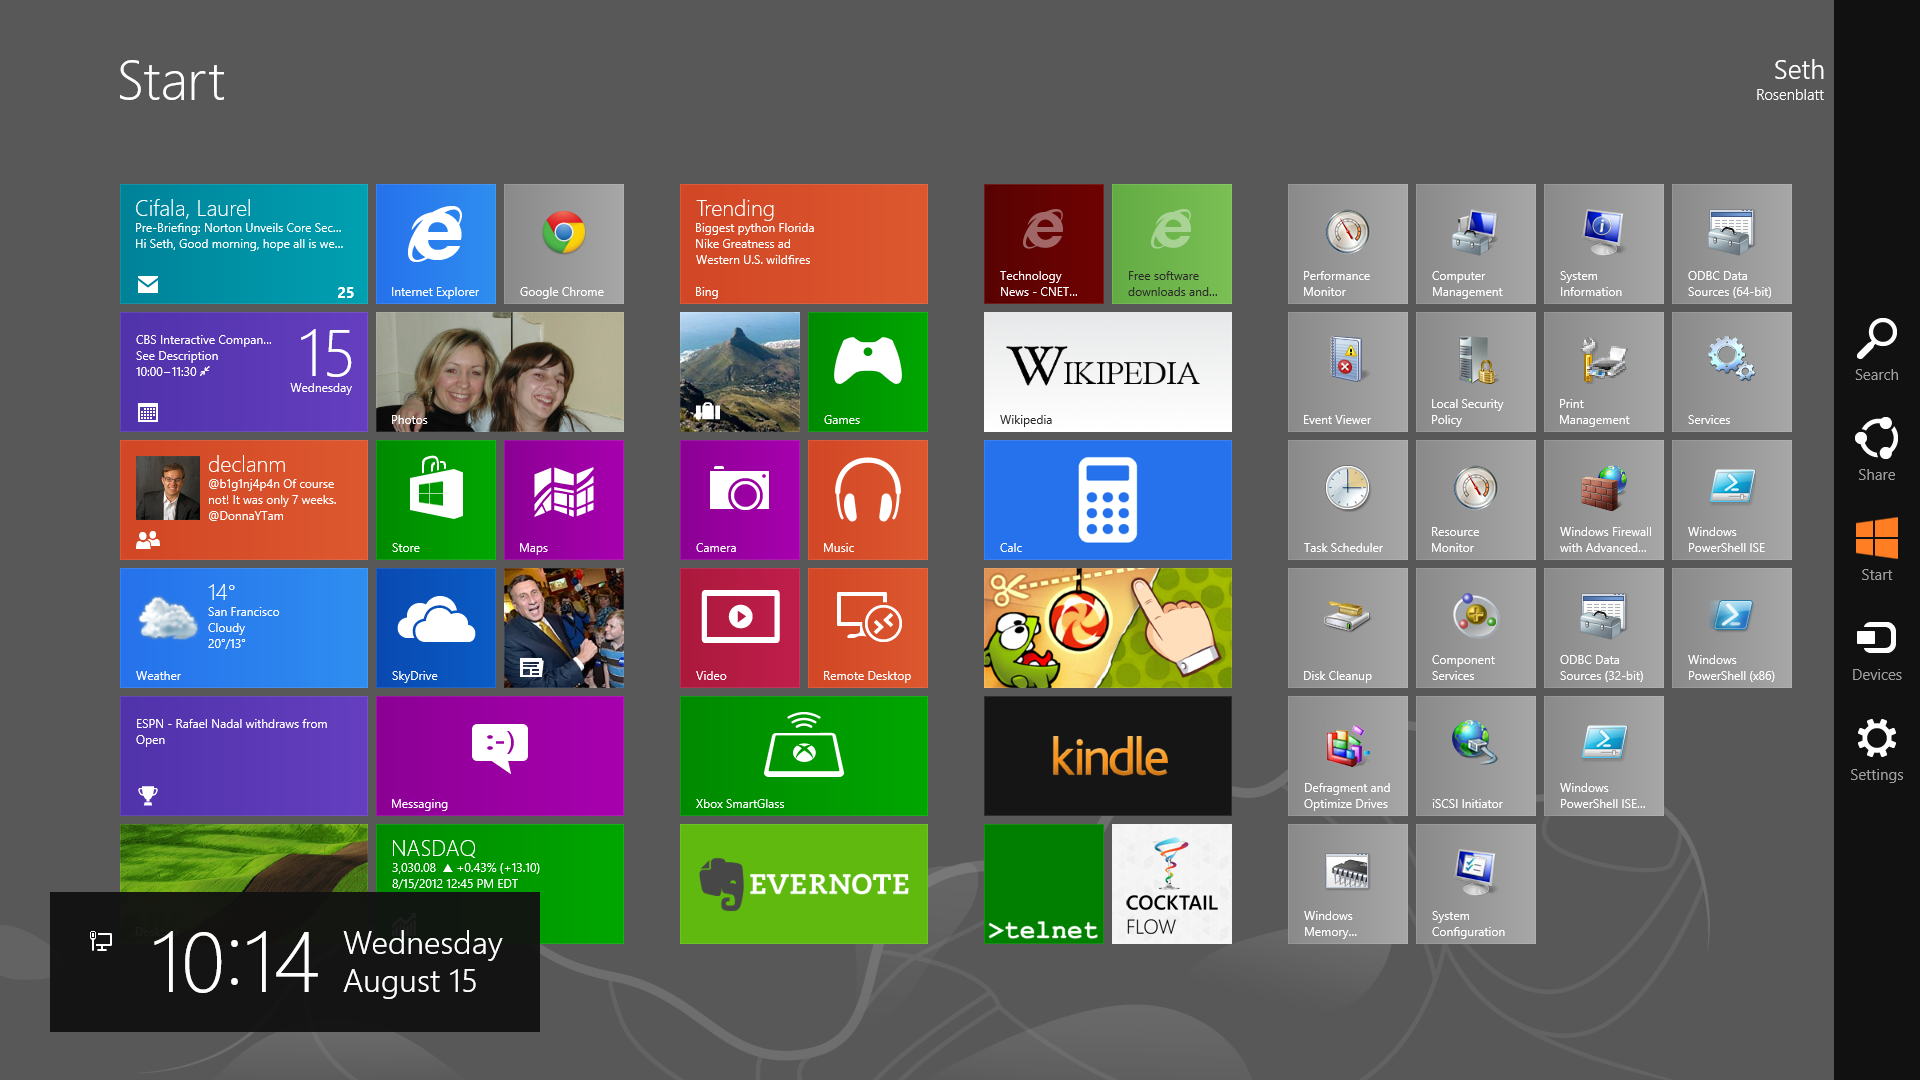 Windows_8_RTM_2_Charms.png